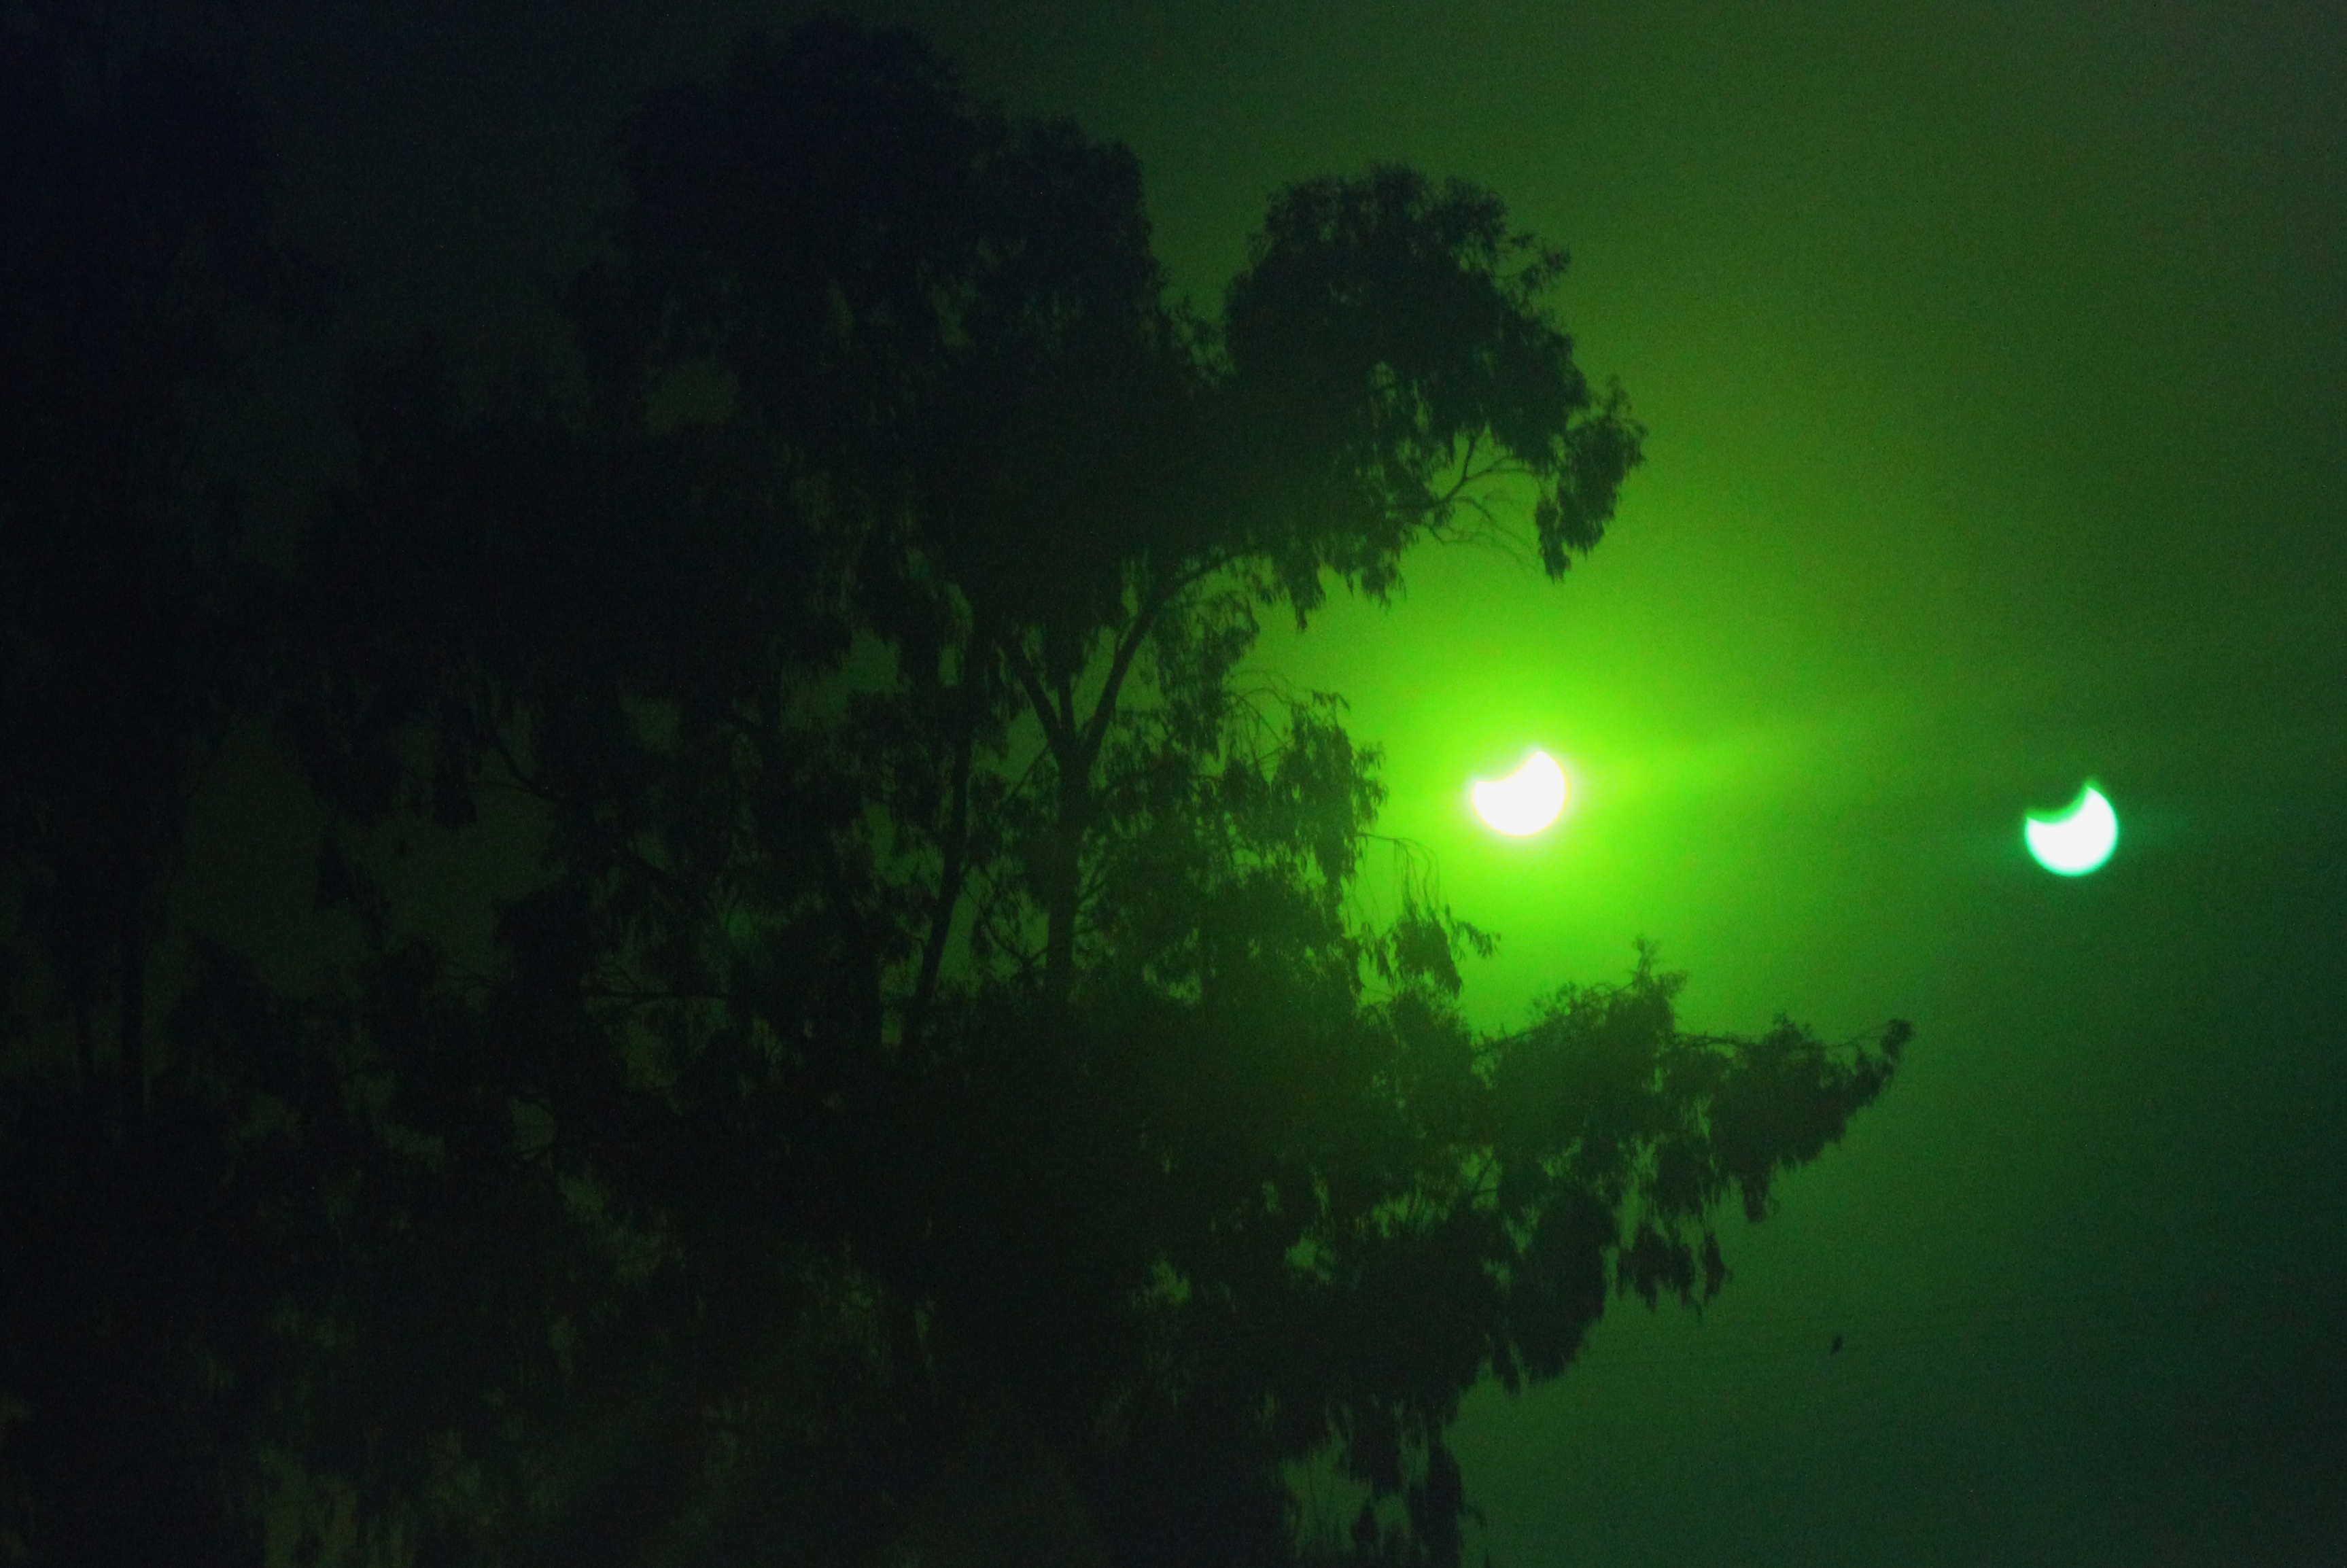 Annular Solar Eclipse Bathed in Green Light